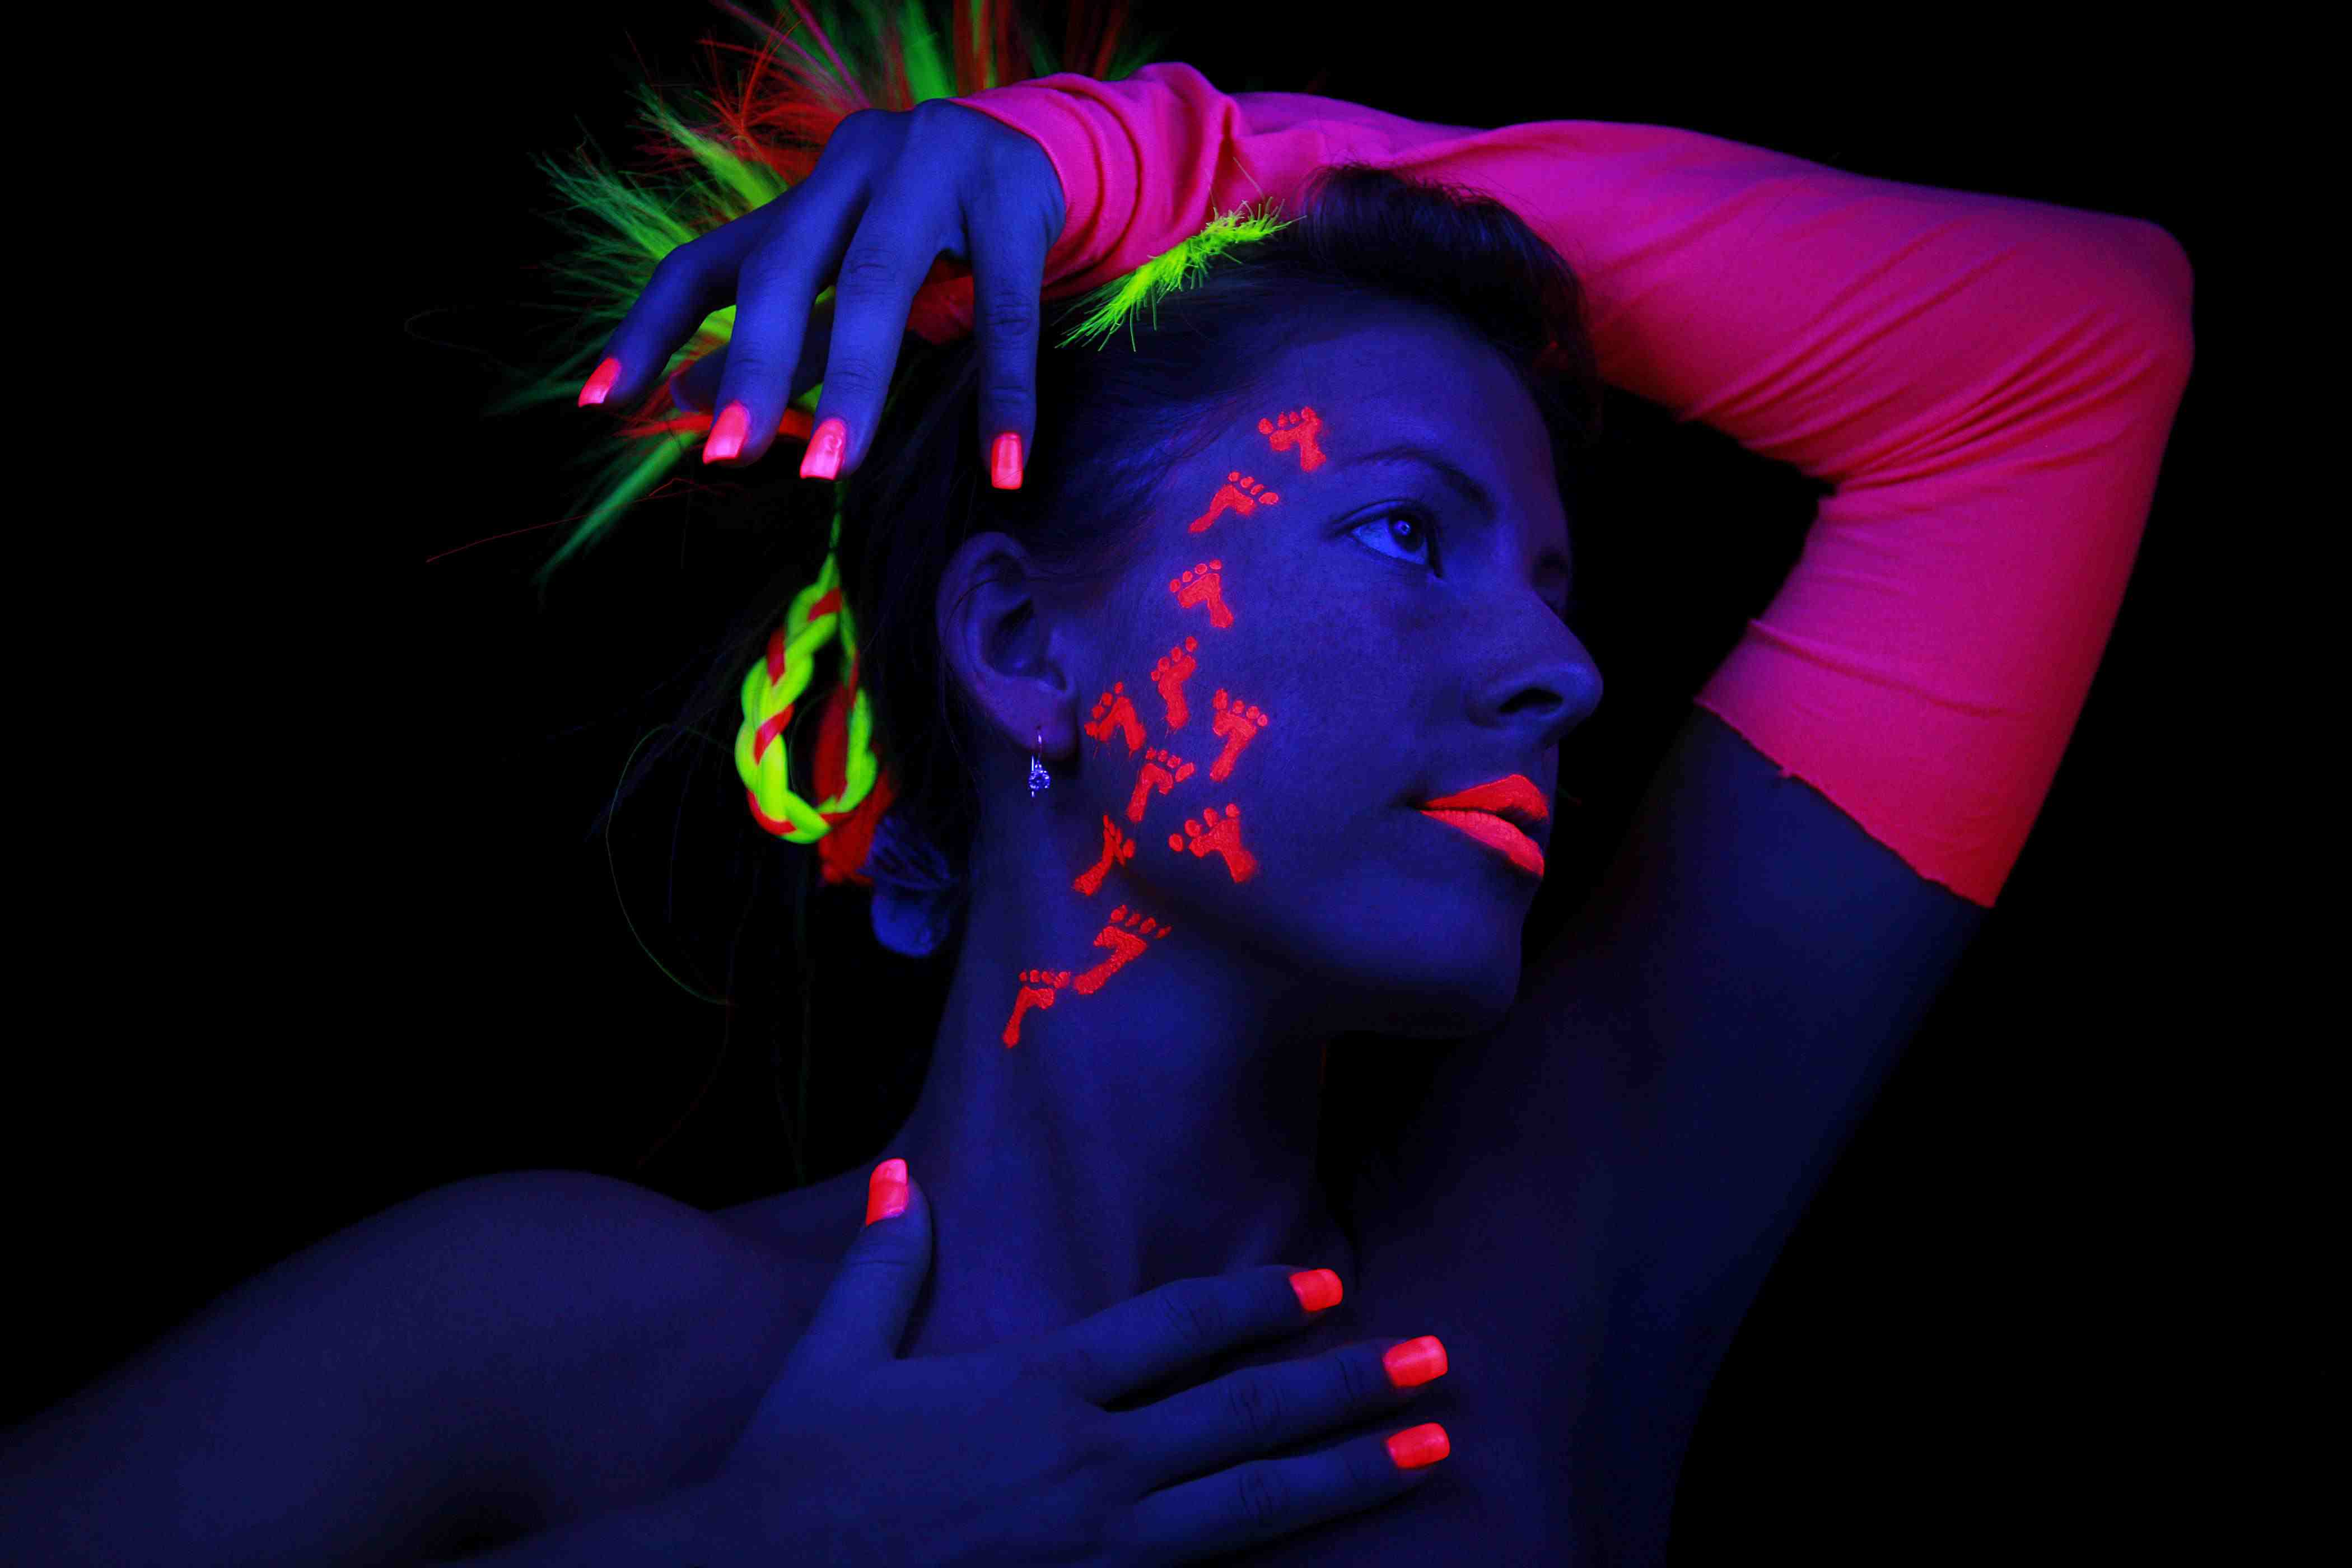 Get fluorescent nail polish, makeup, and temporary tattoos to light up a glow party.